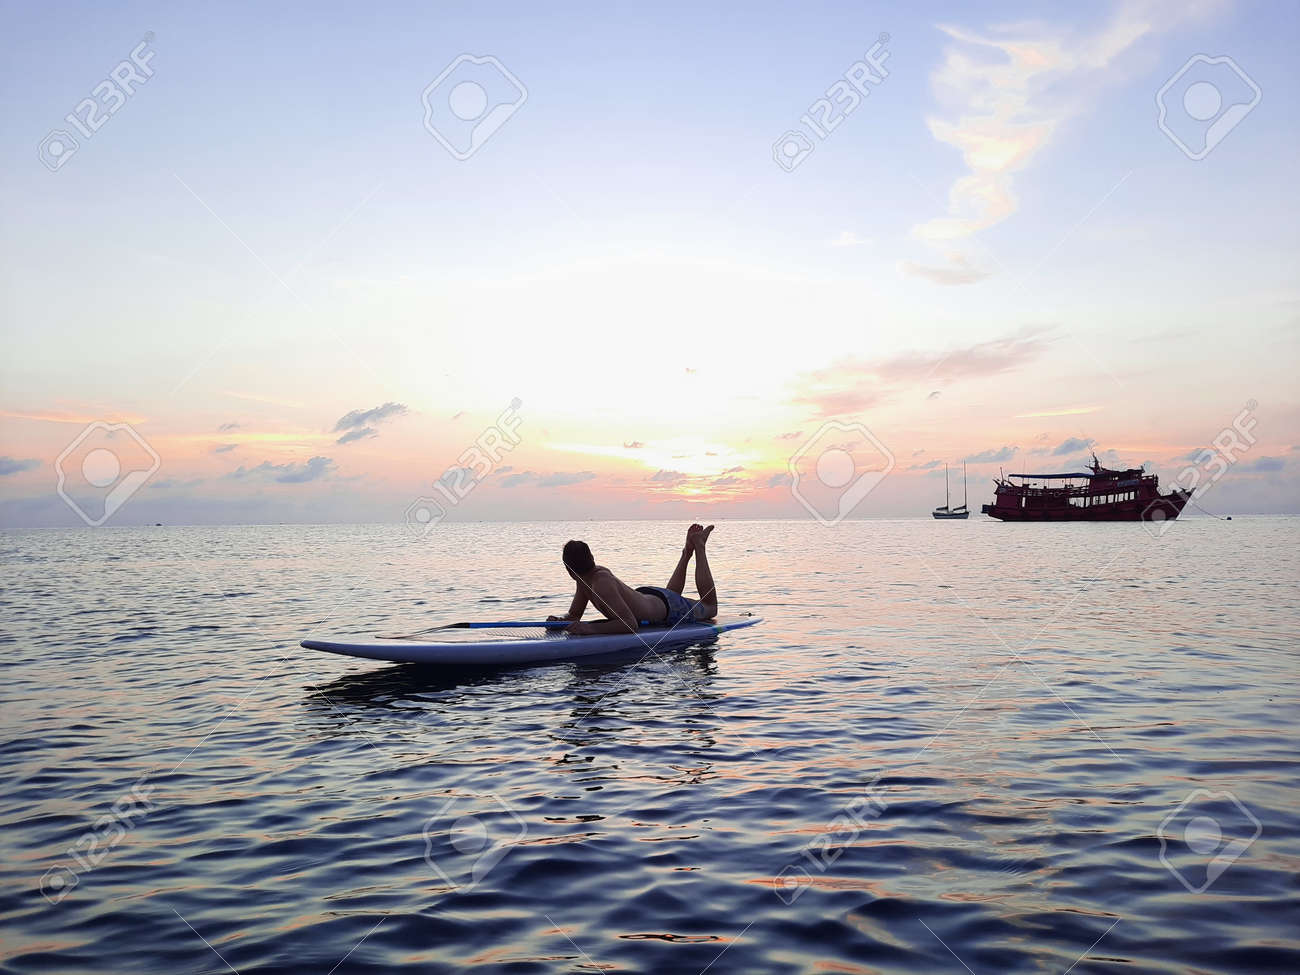 on a stand up paddle board, young man 34 years old, German, lies on a board on the ocean in Thailand, on the island Koh Tao at sunset - 169664543